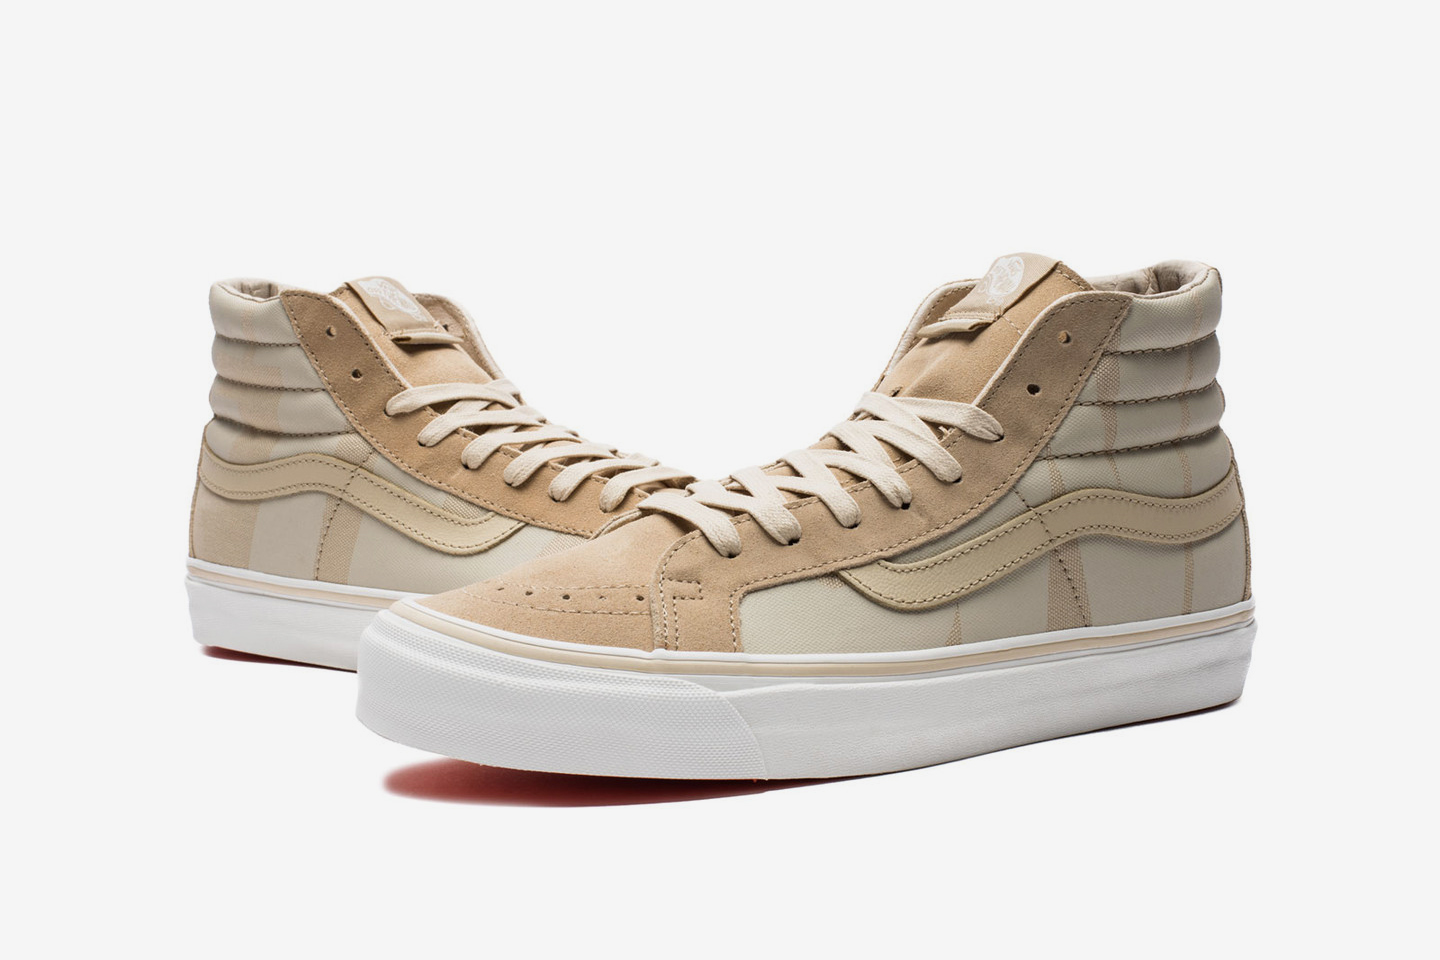 423375252a Vans x Thrasher s Red Hot Collaboration  Take a First Look Here